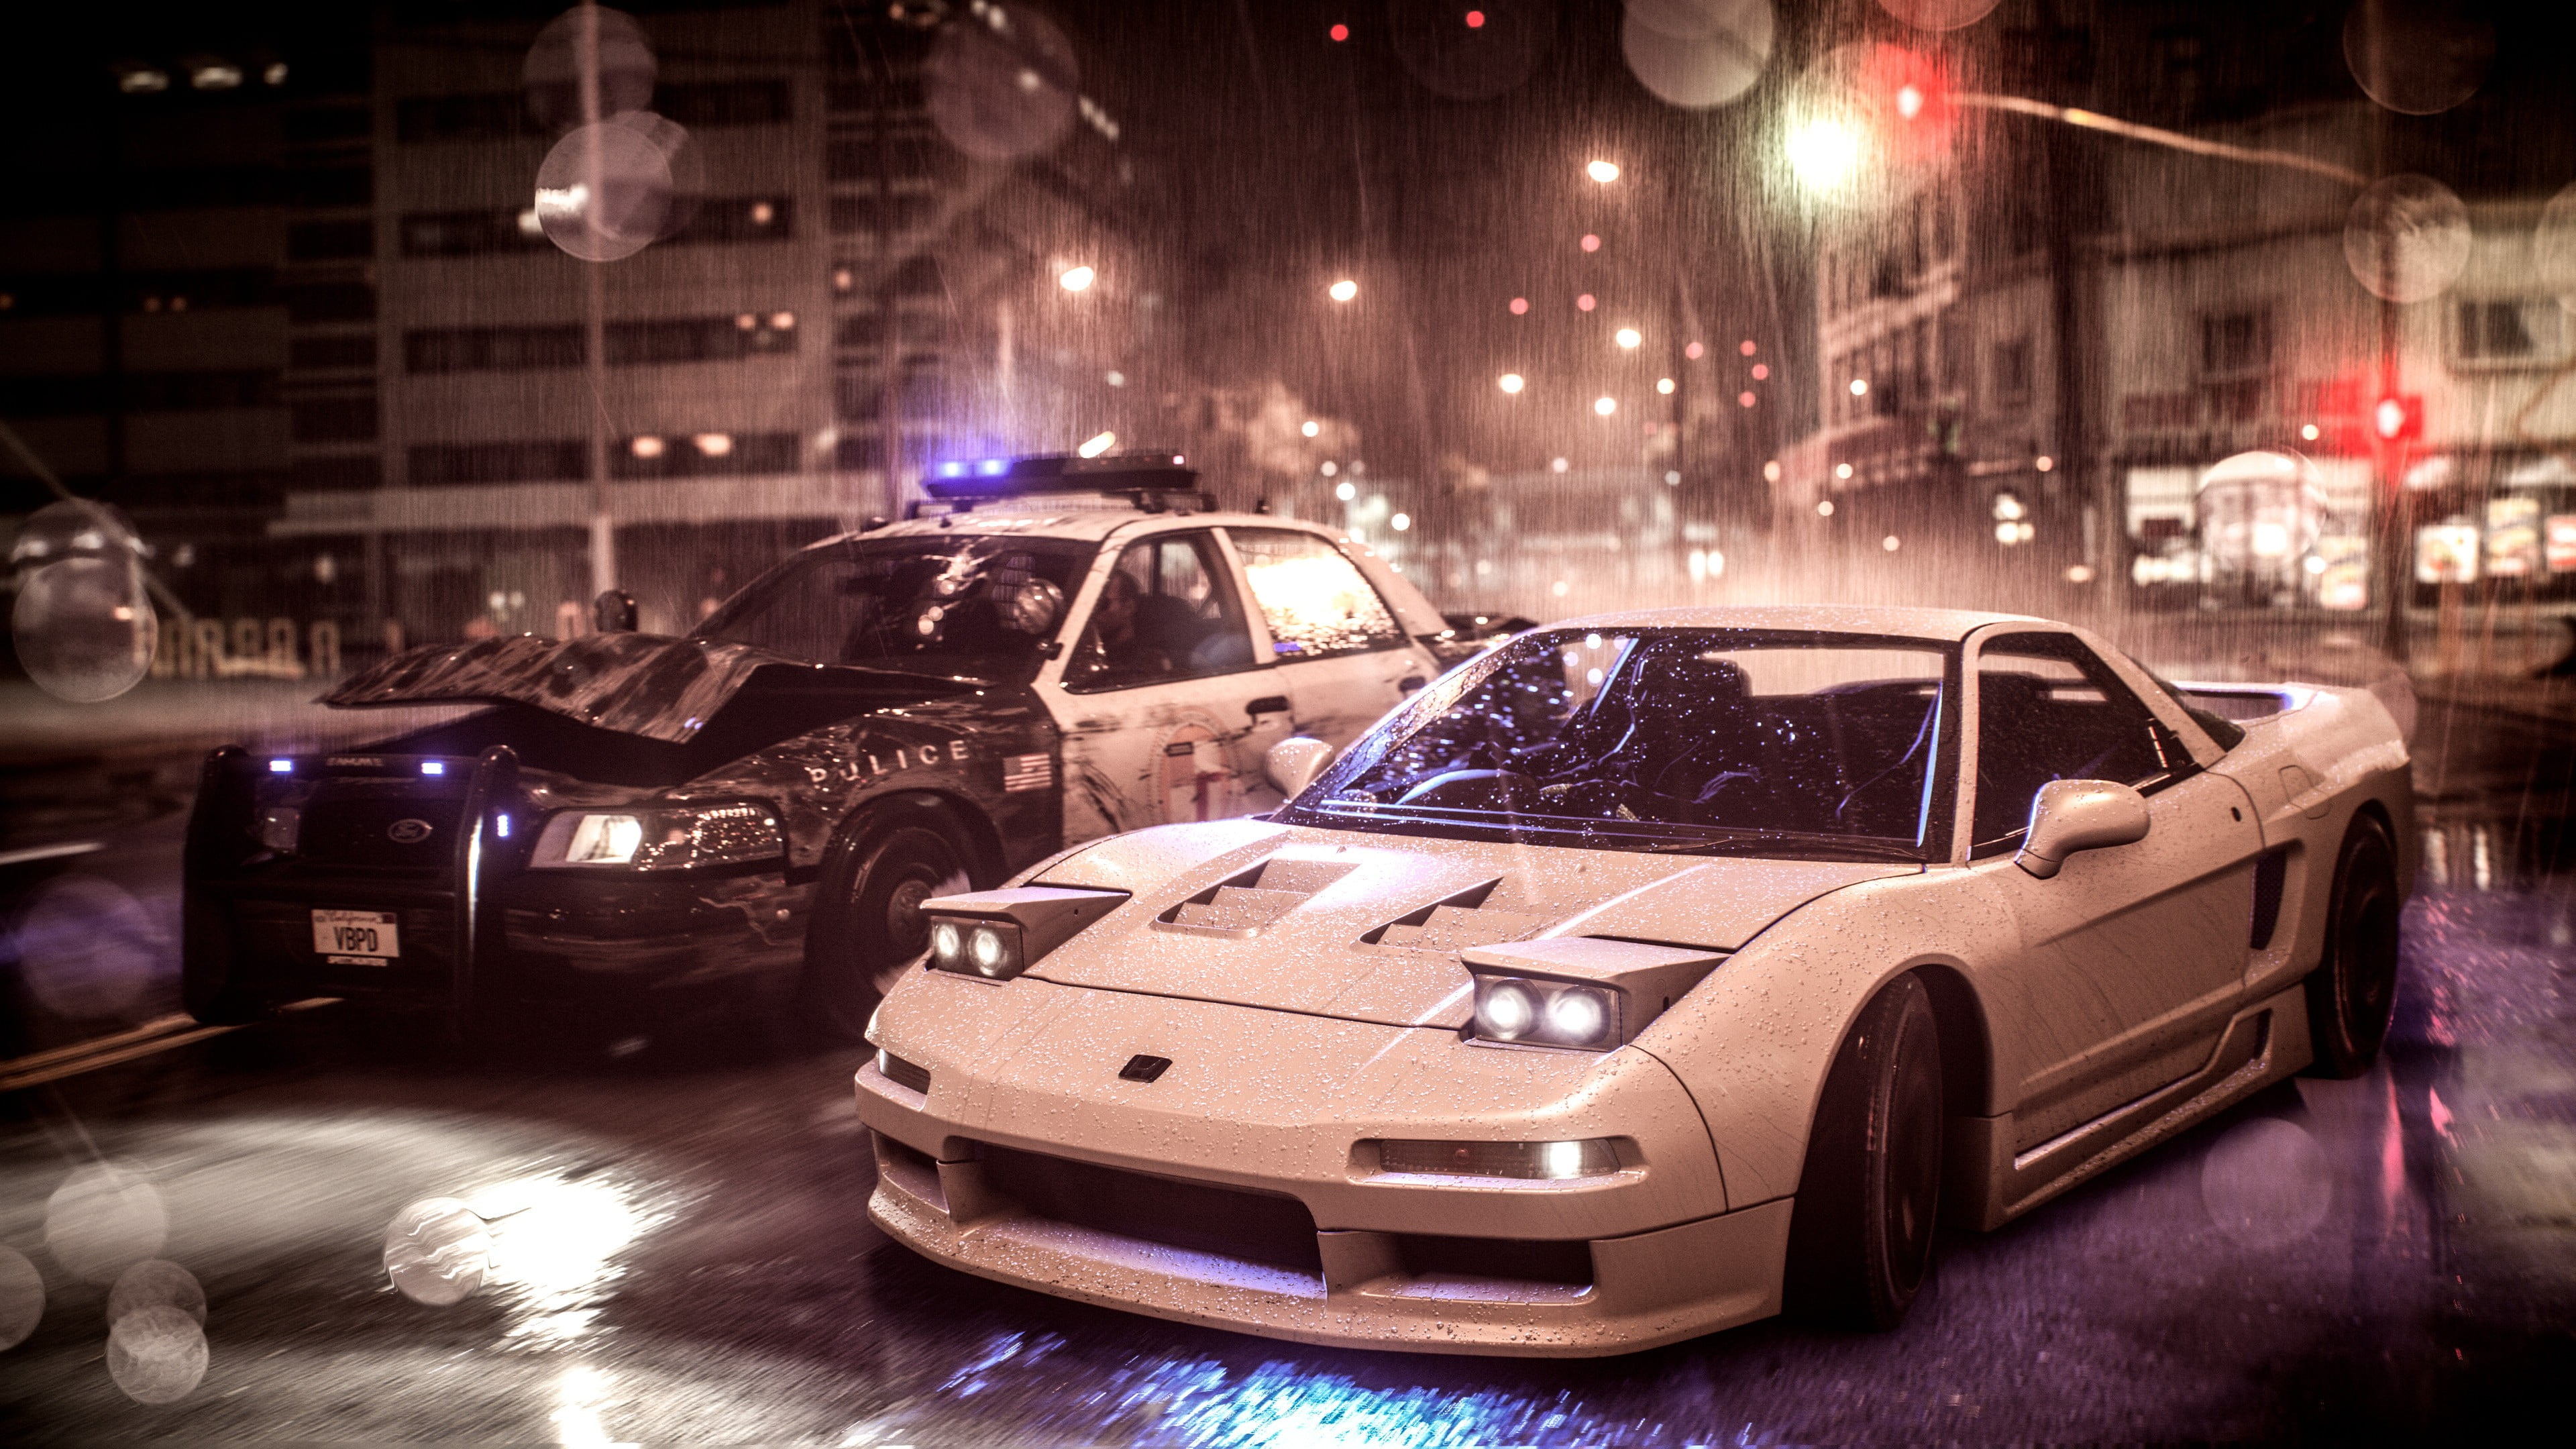 3840x2160 Need For Speed Payback 4k Download Free Wallpaper Car